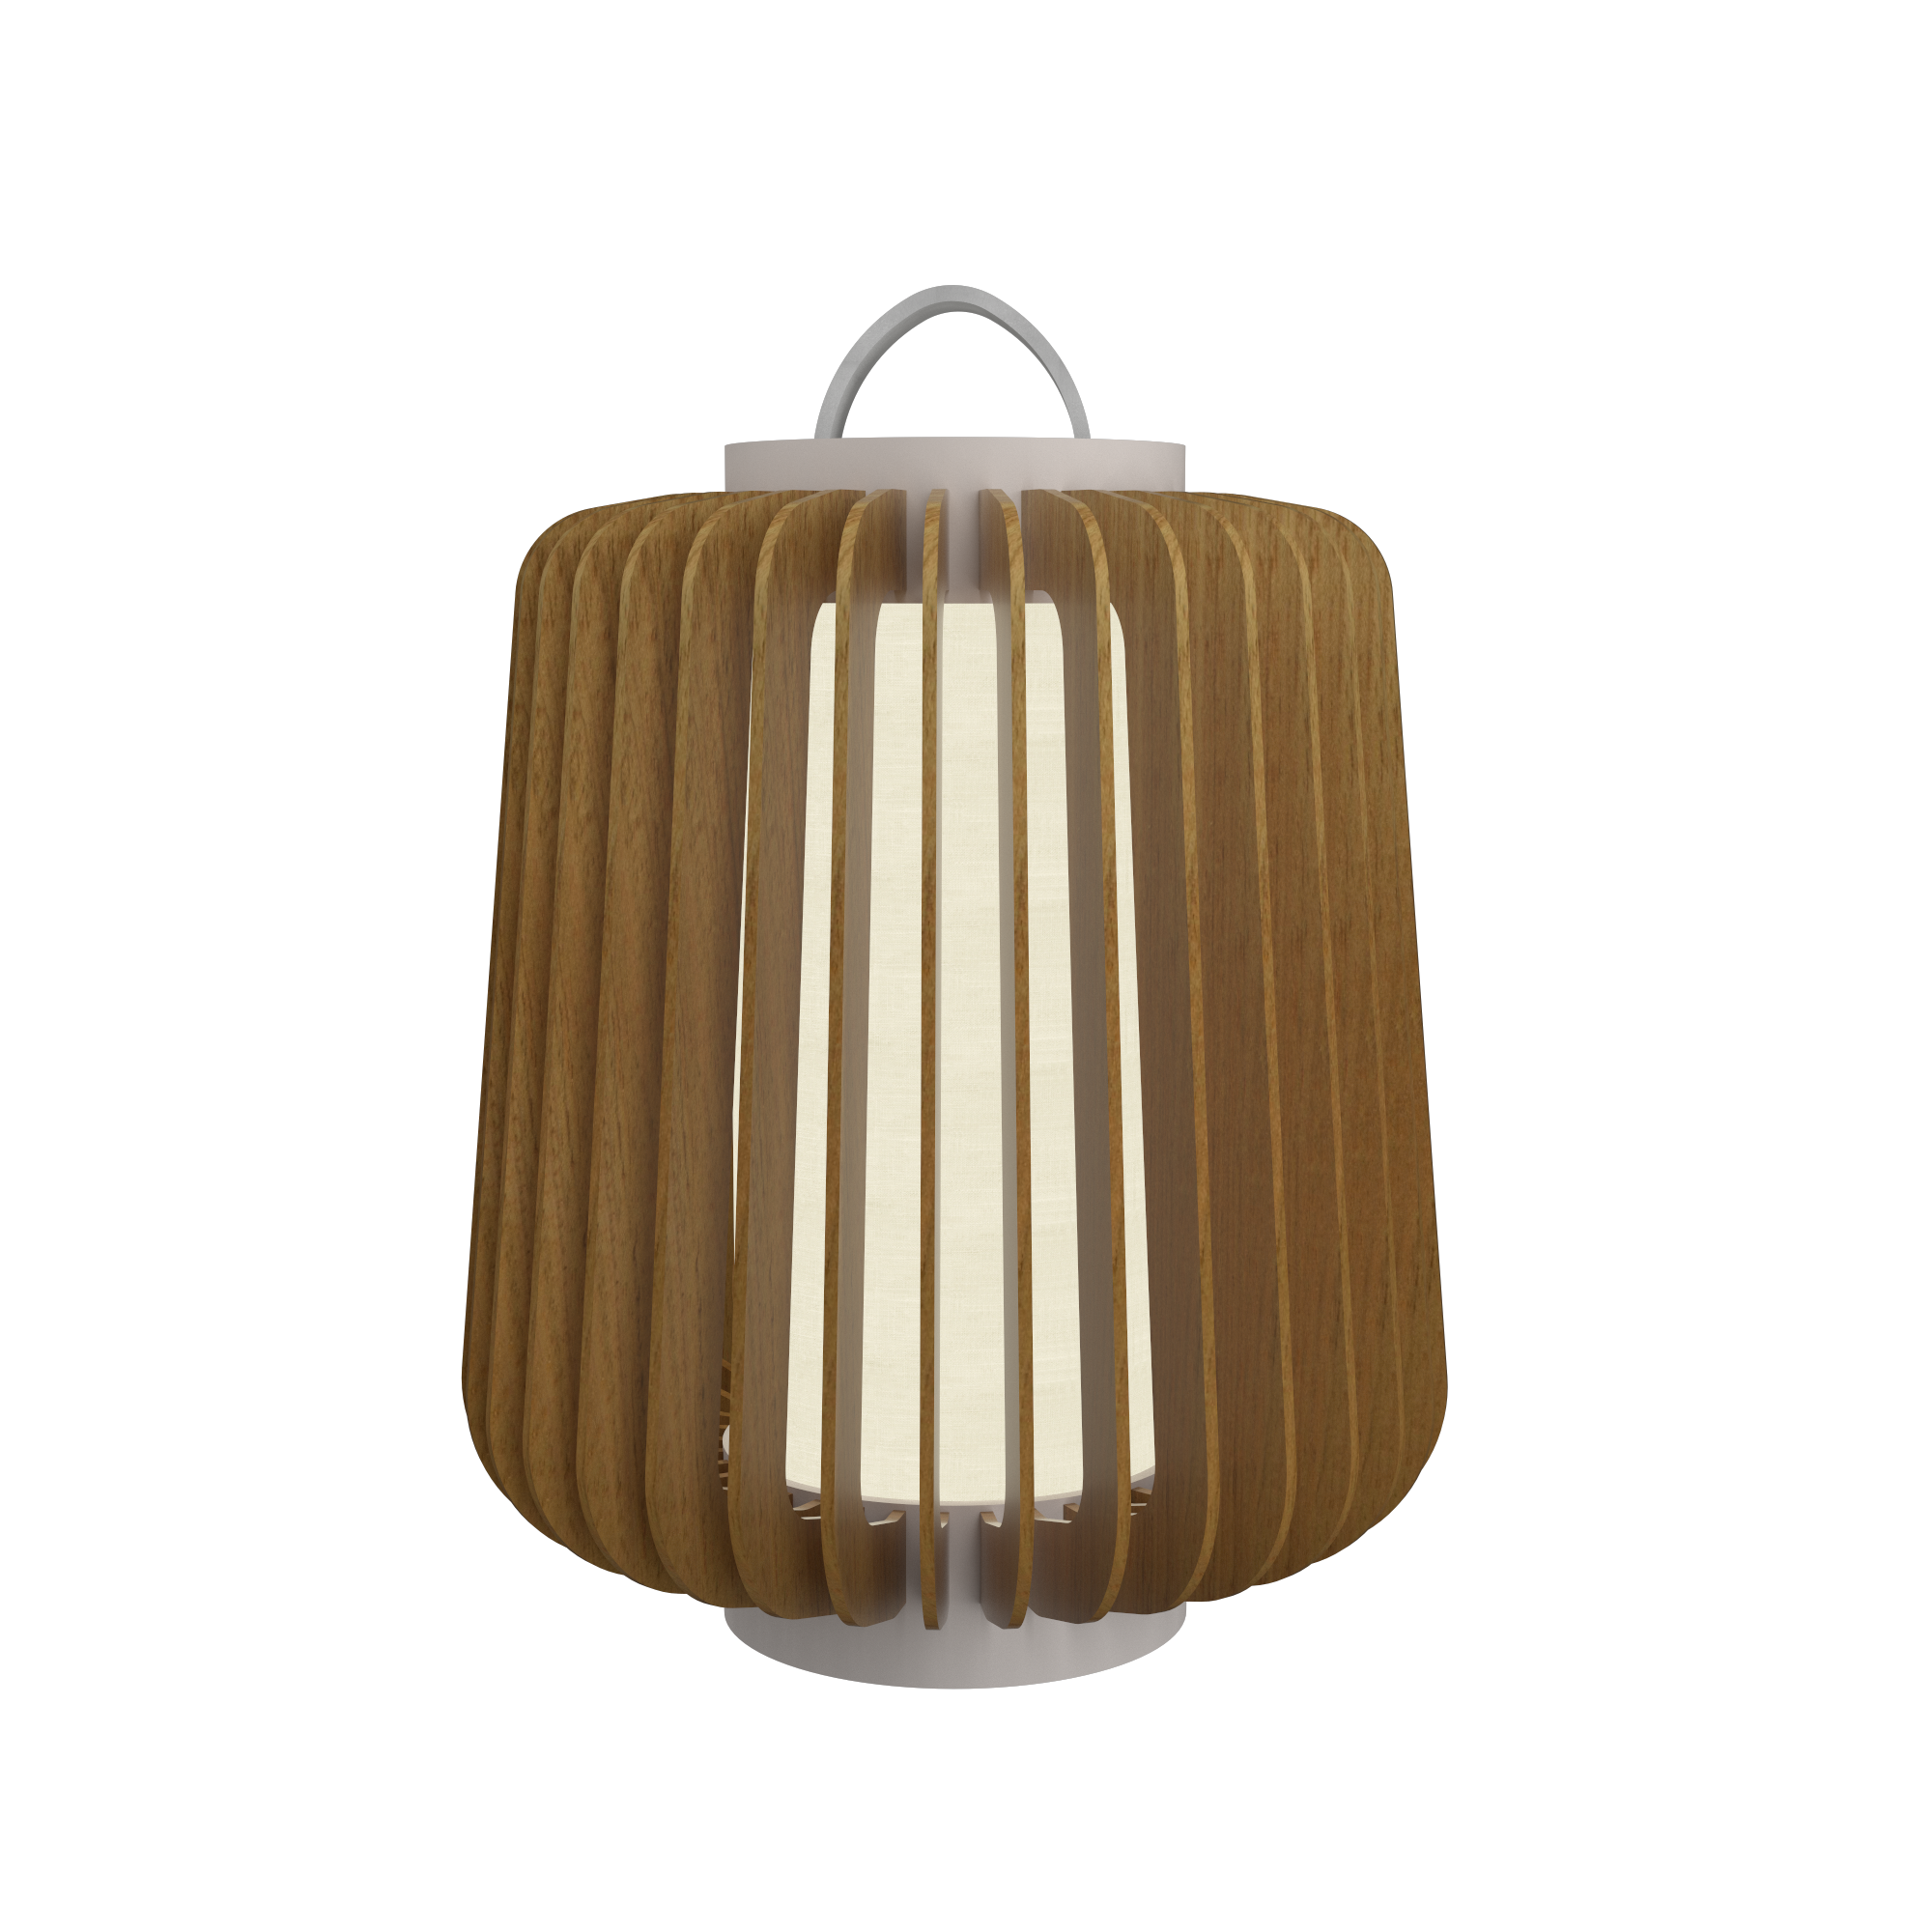 Floor Lamp Accord Stecche Di Legno 3035 - Stecche Di Legno Line Accord Lighting | 09. Louro Freijó